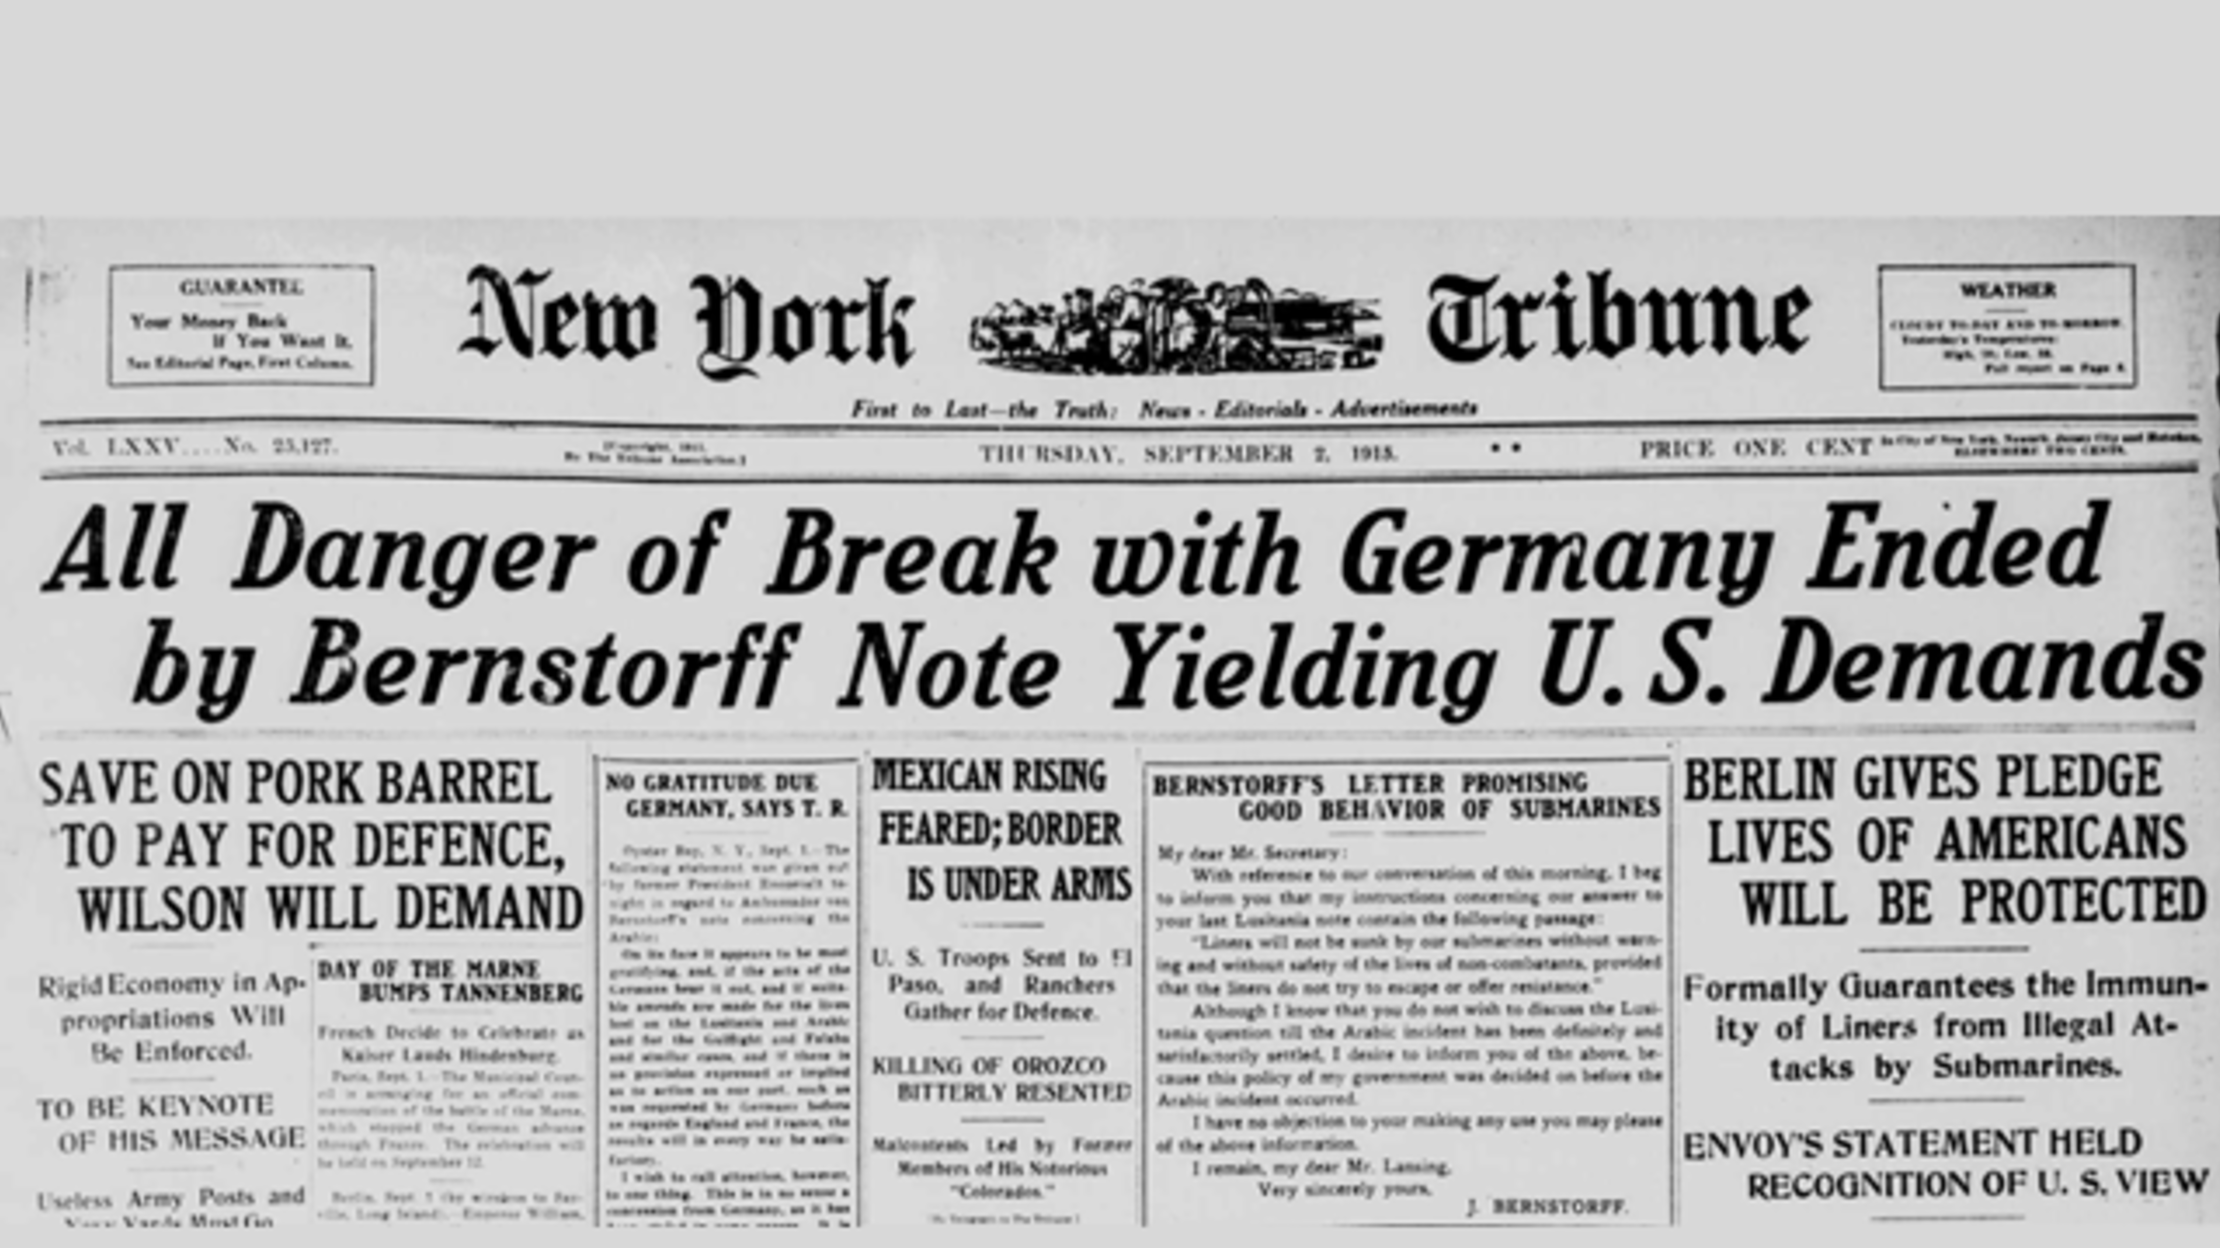 WWI Centennial: Germany Backs Down, As Spy Scandals Erupt